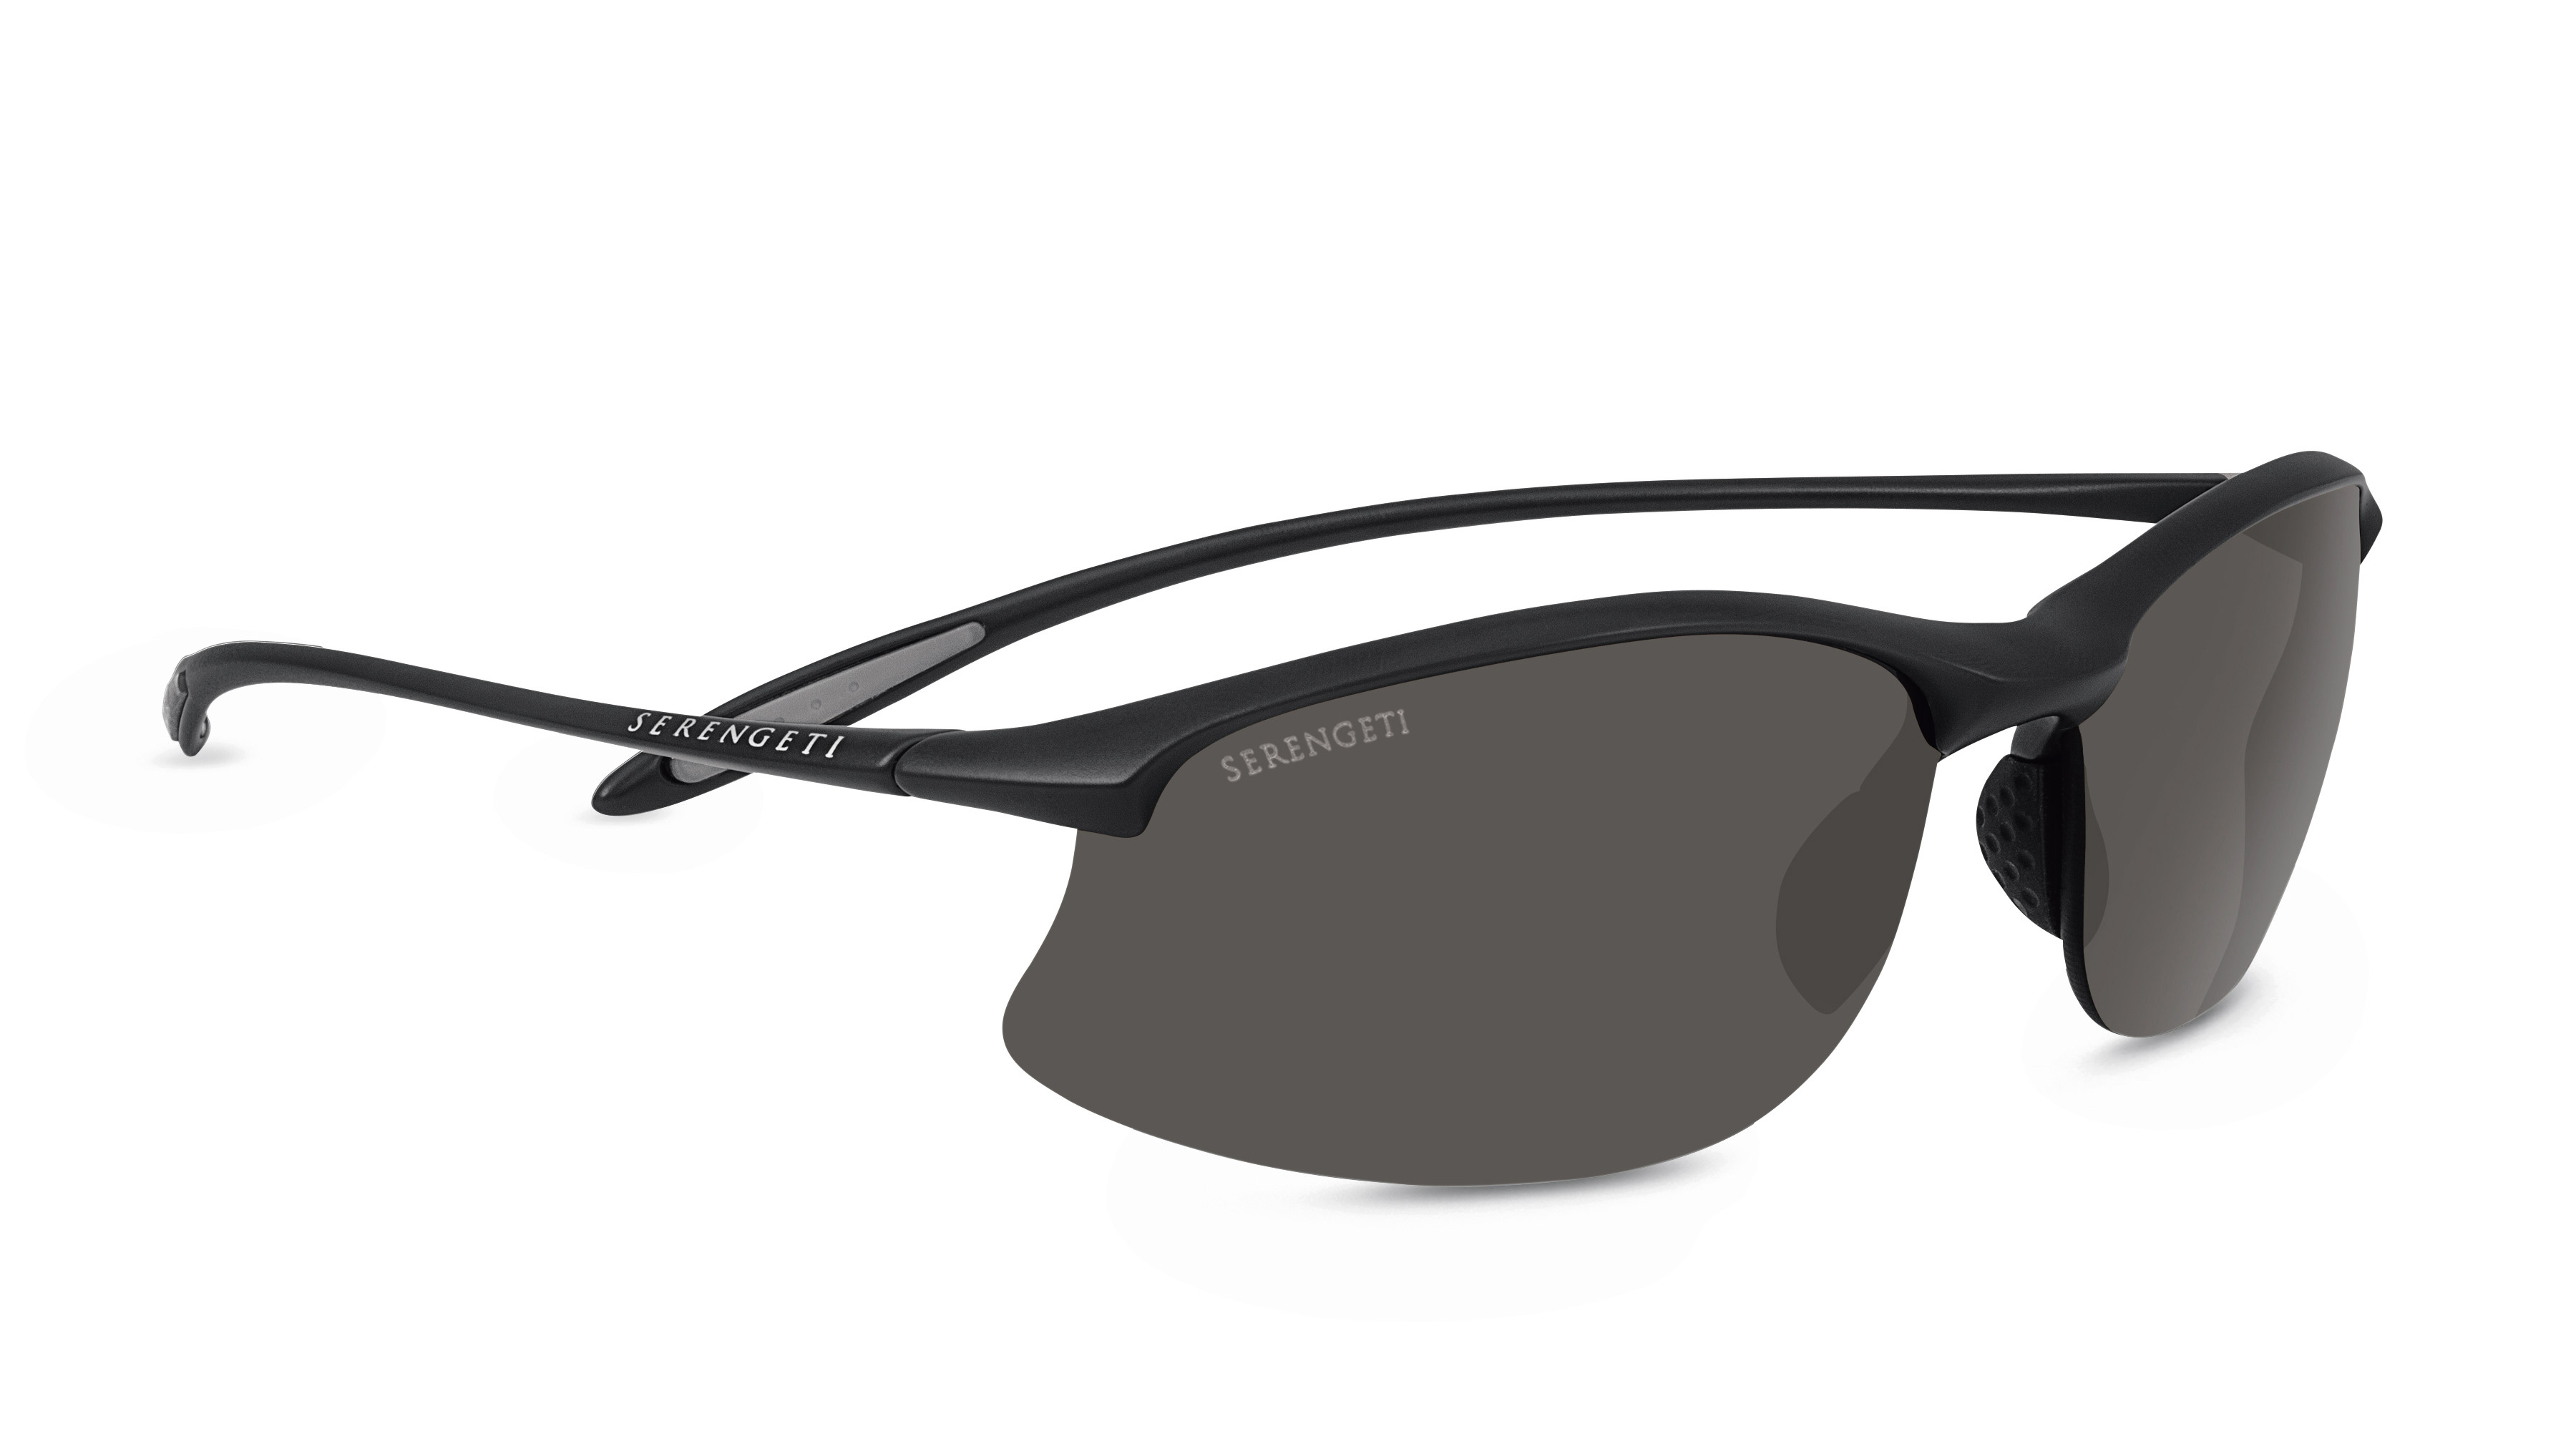 2d8d1d5009 Serengeti Maestrale Prescription Sunglasses FREE S H 8450SV